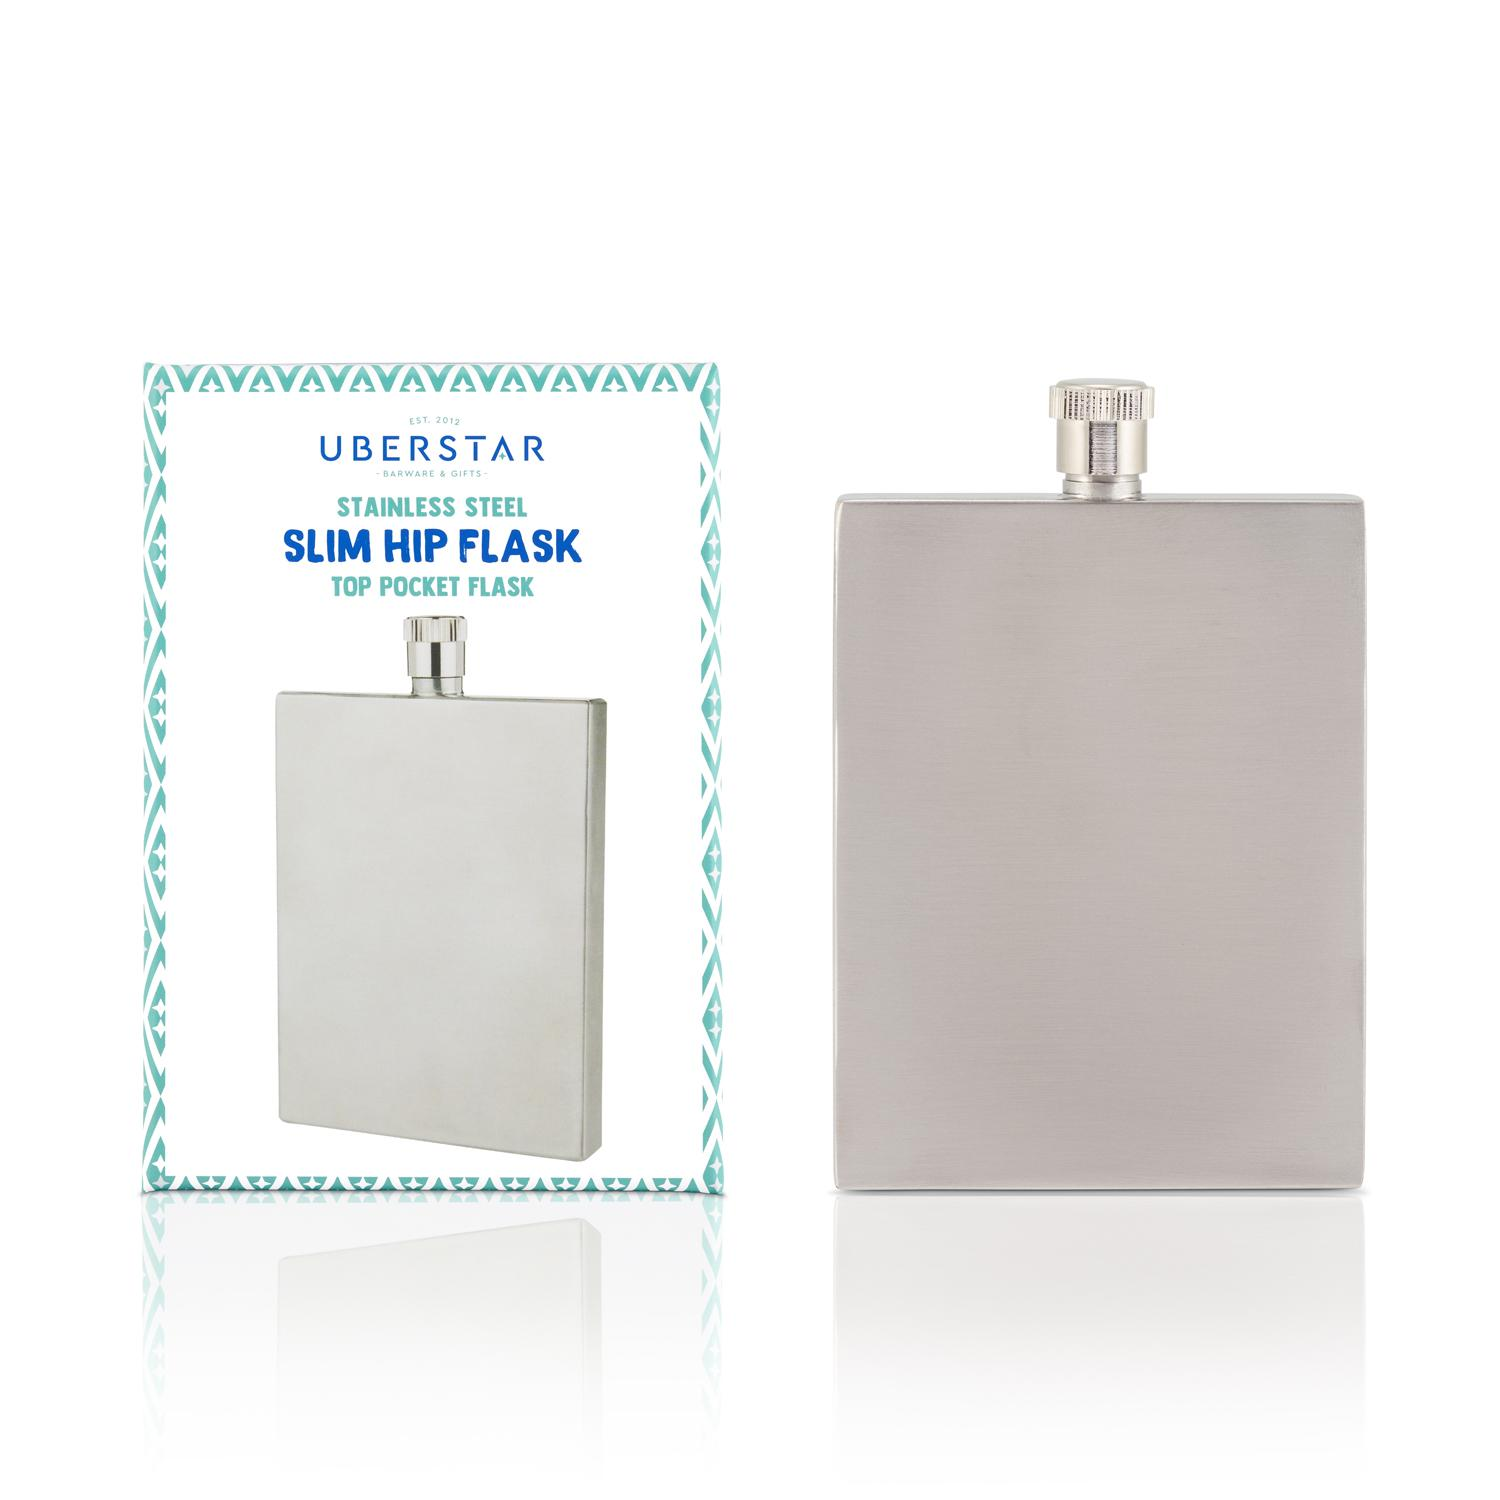 Uberstar Slim Hip Flask - Only £14.99